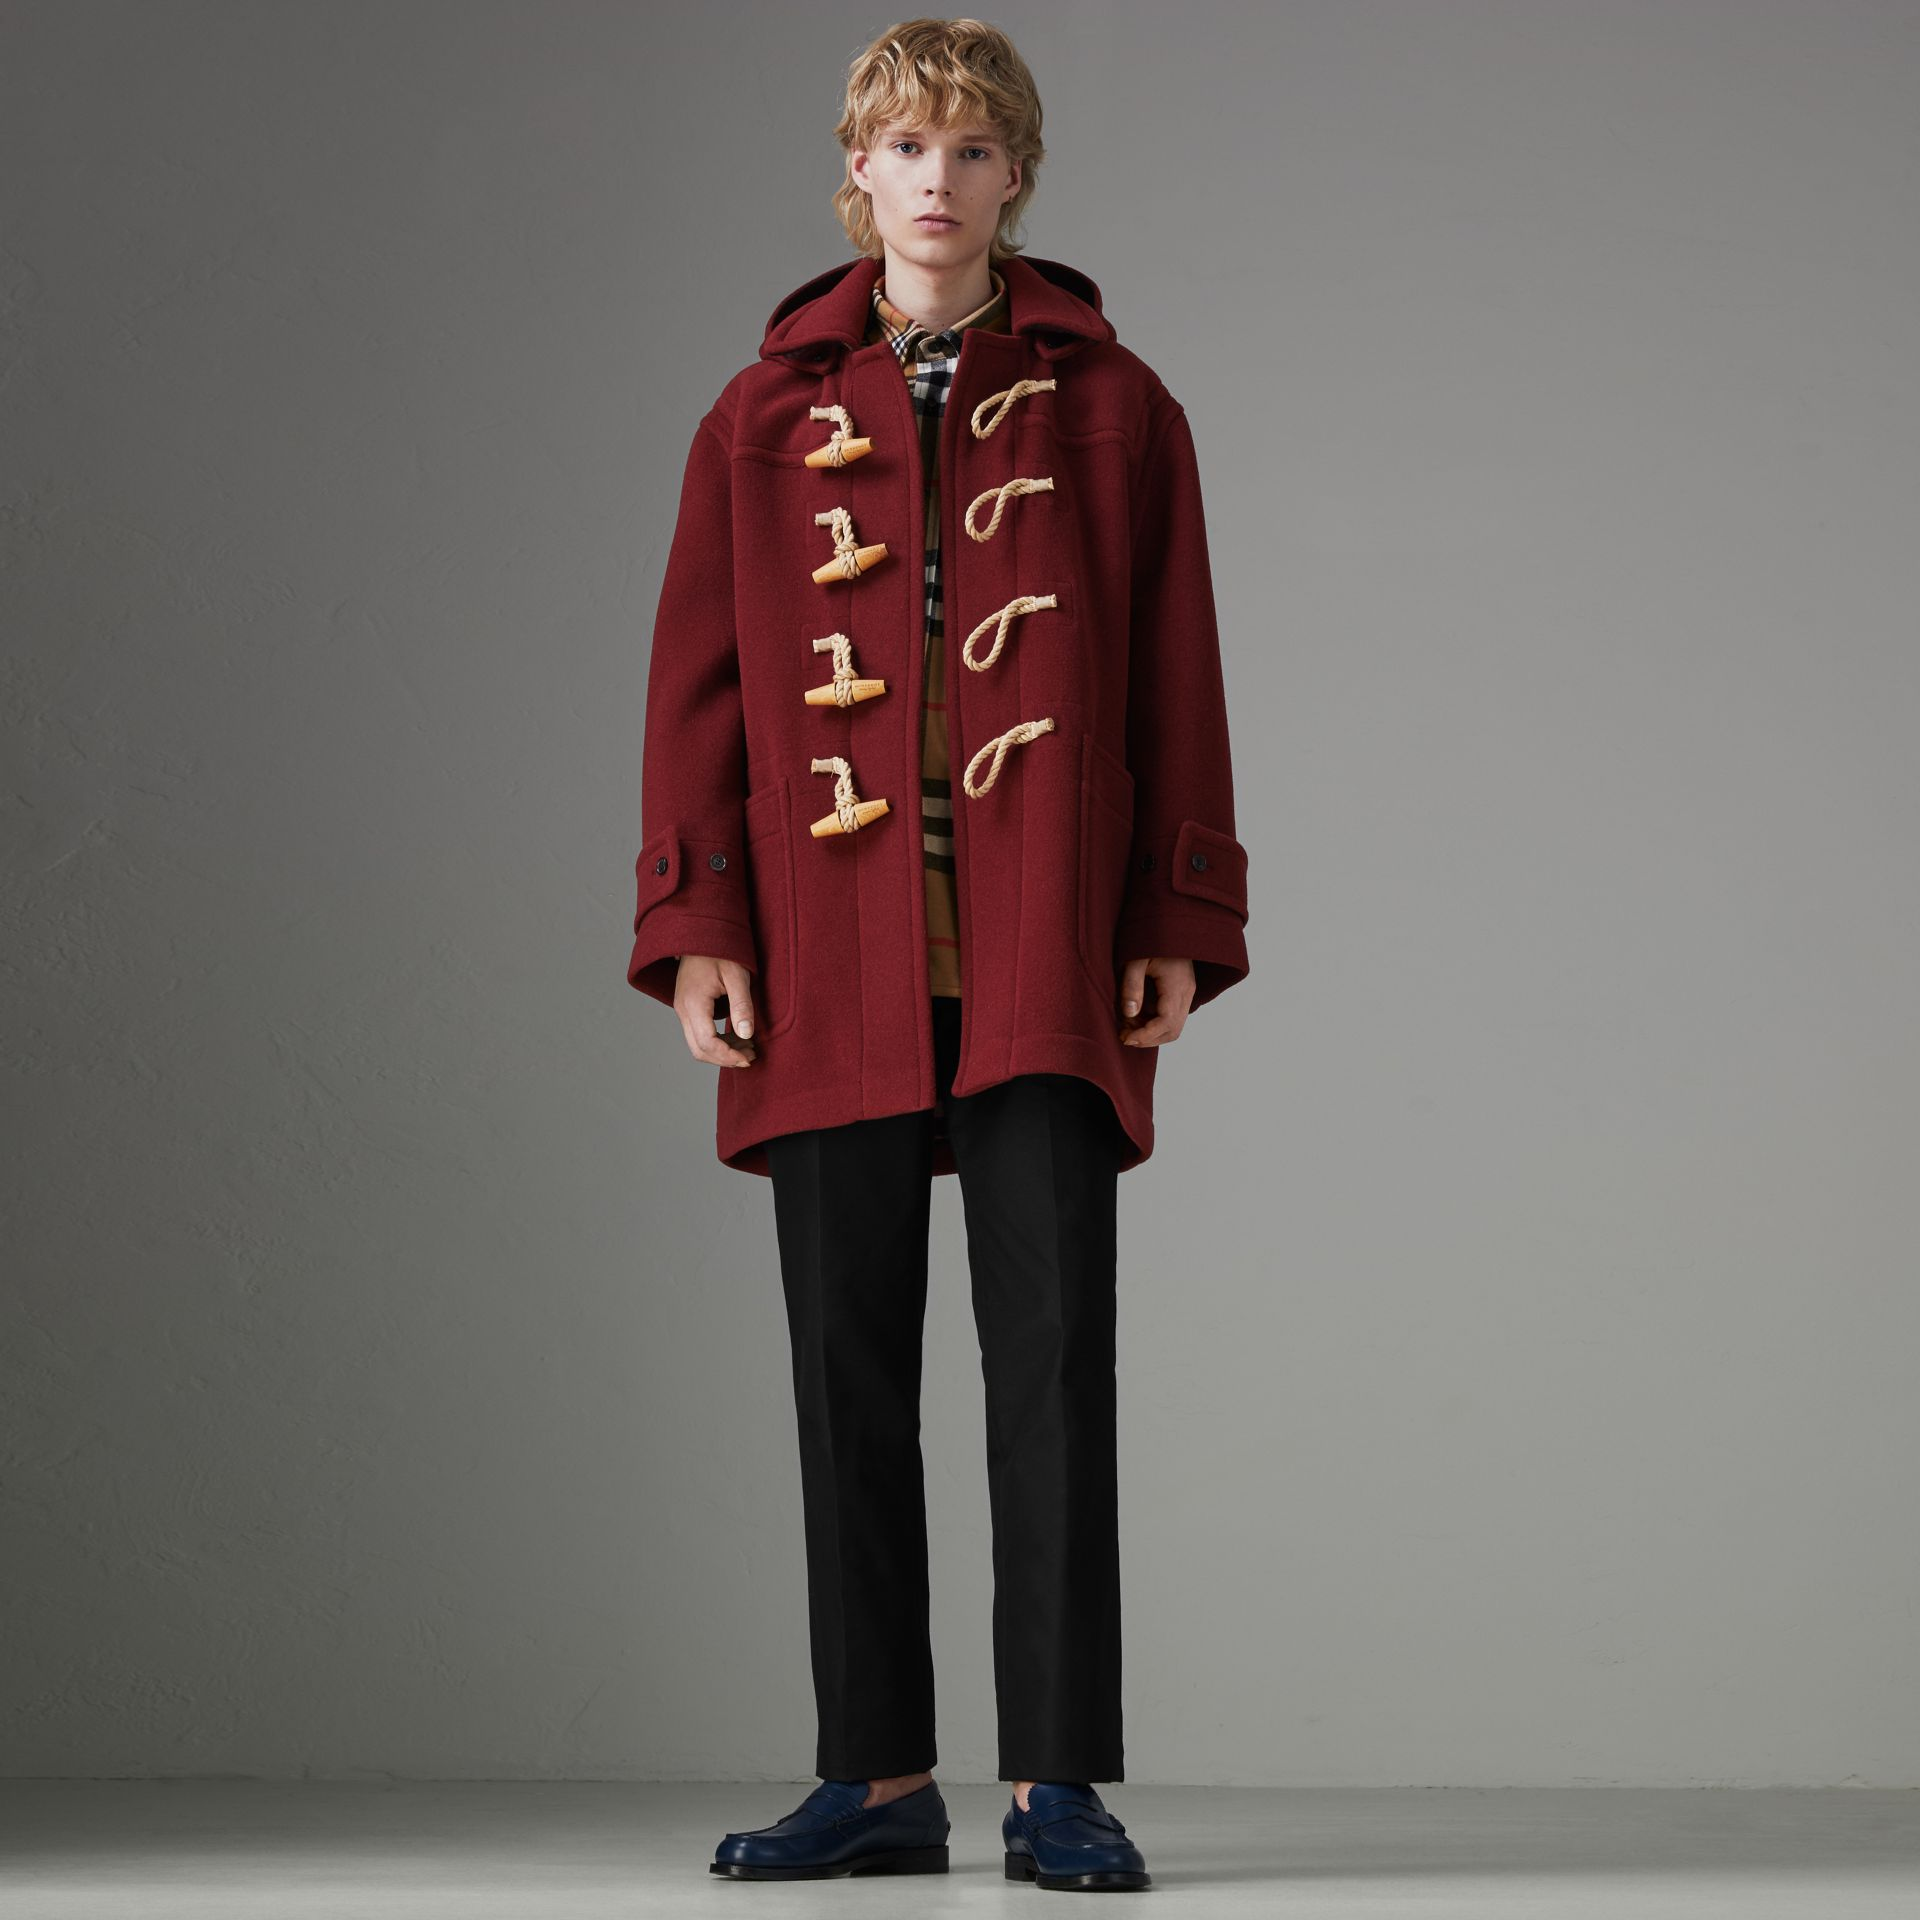 Gosha x Burberry Oversized Duffle Coat in Claret | Burberry - gallery image 0